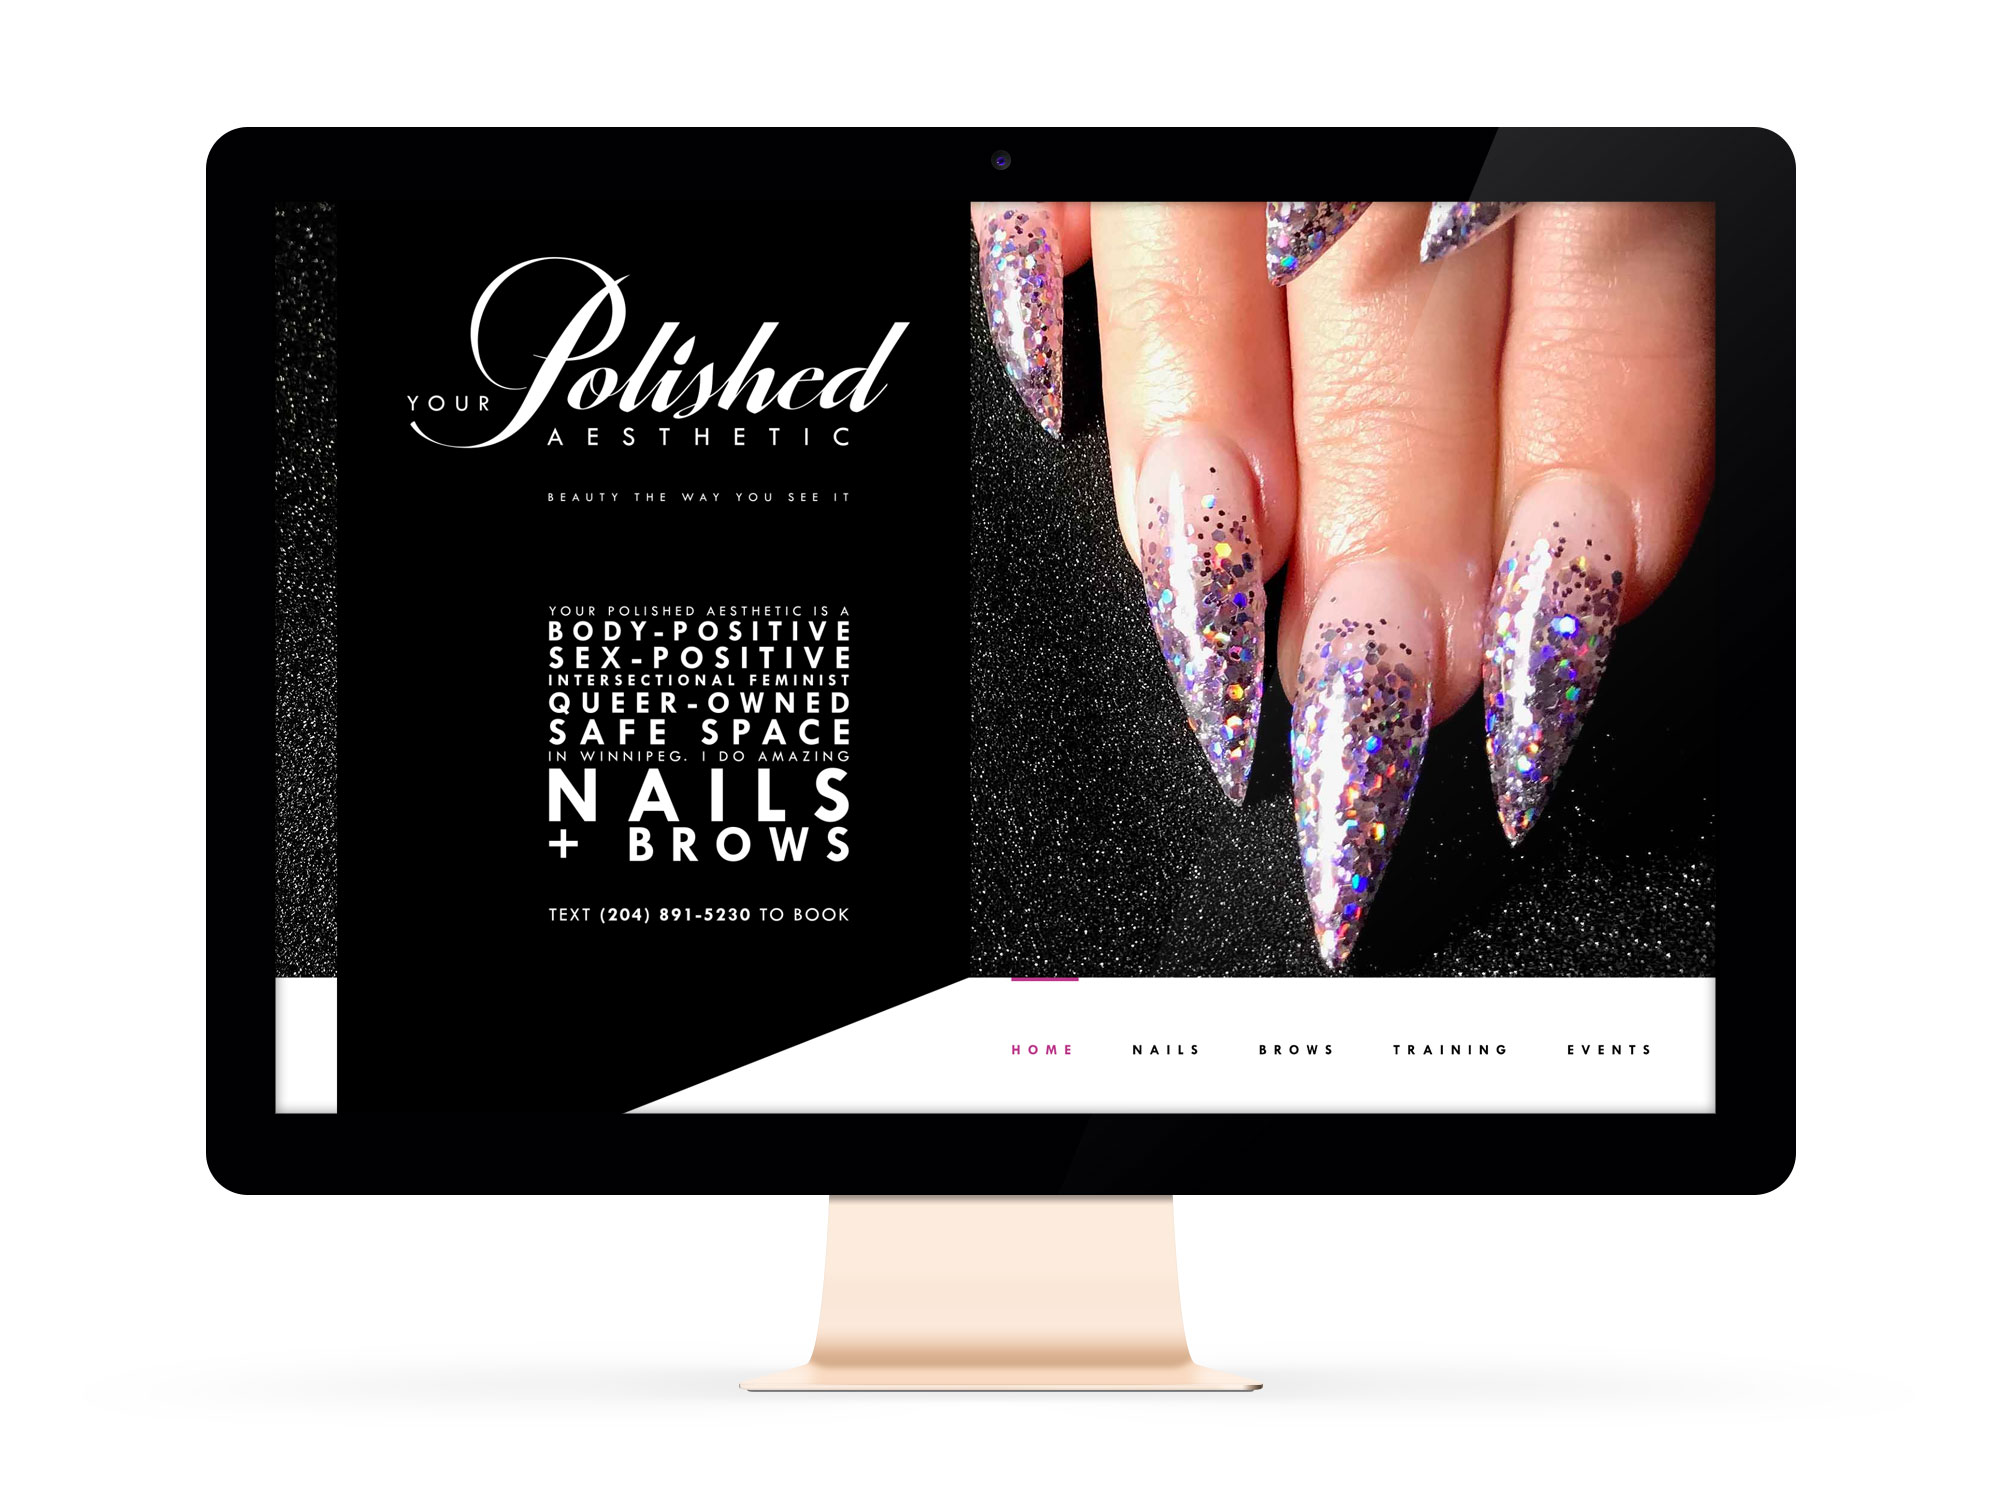 Beautiful Websites for Feminist Entrepreneurs and Aesthetician, Your Polished Aesthetic